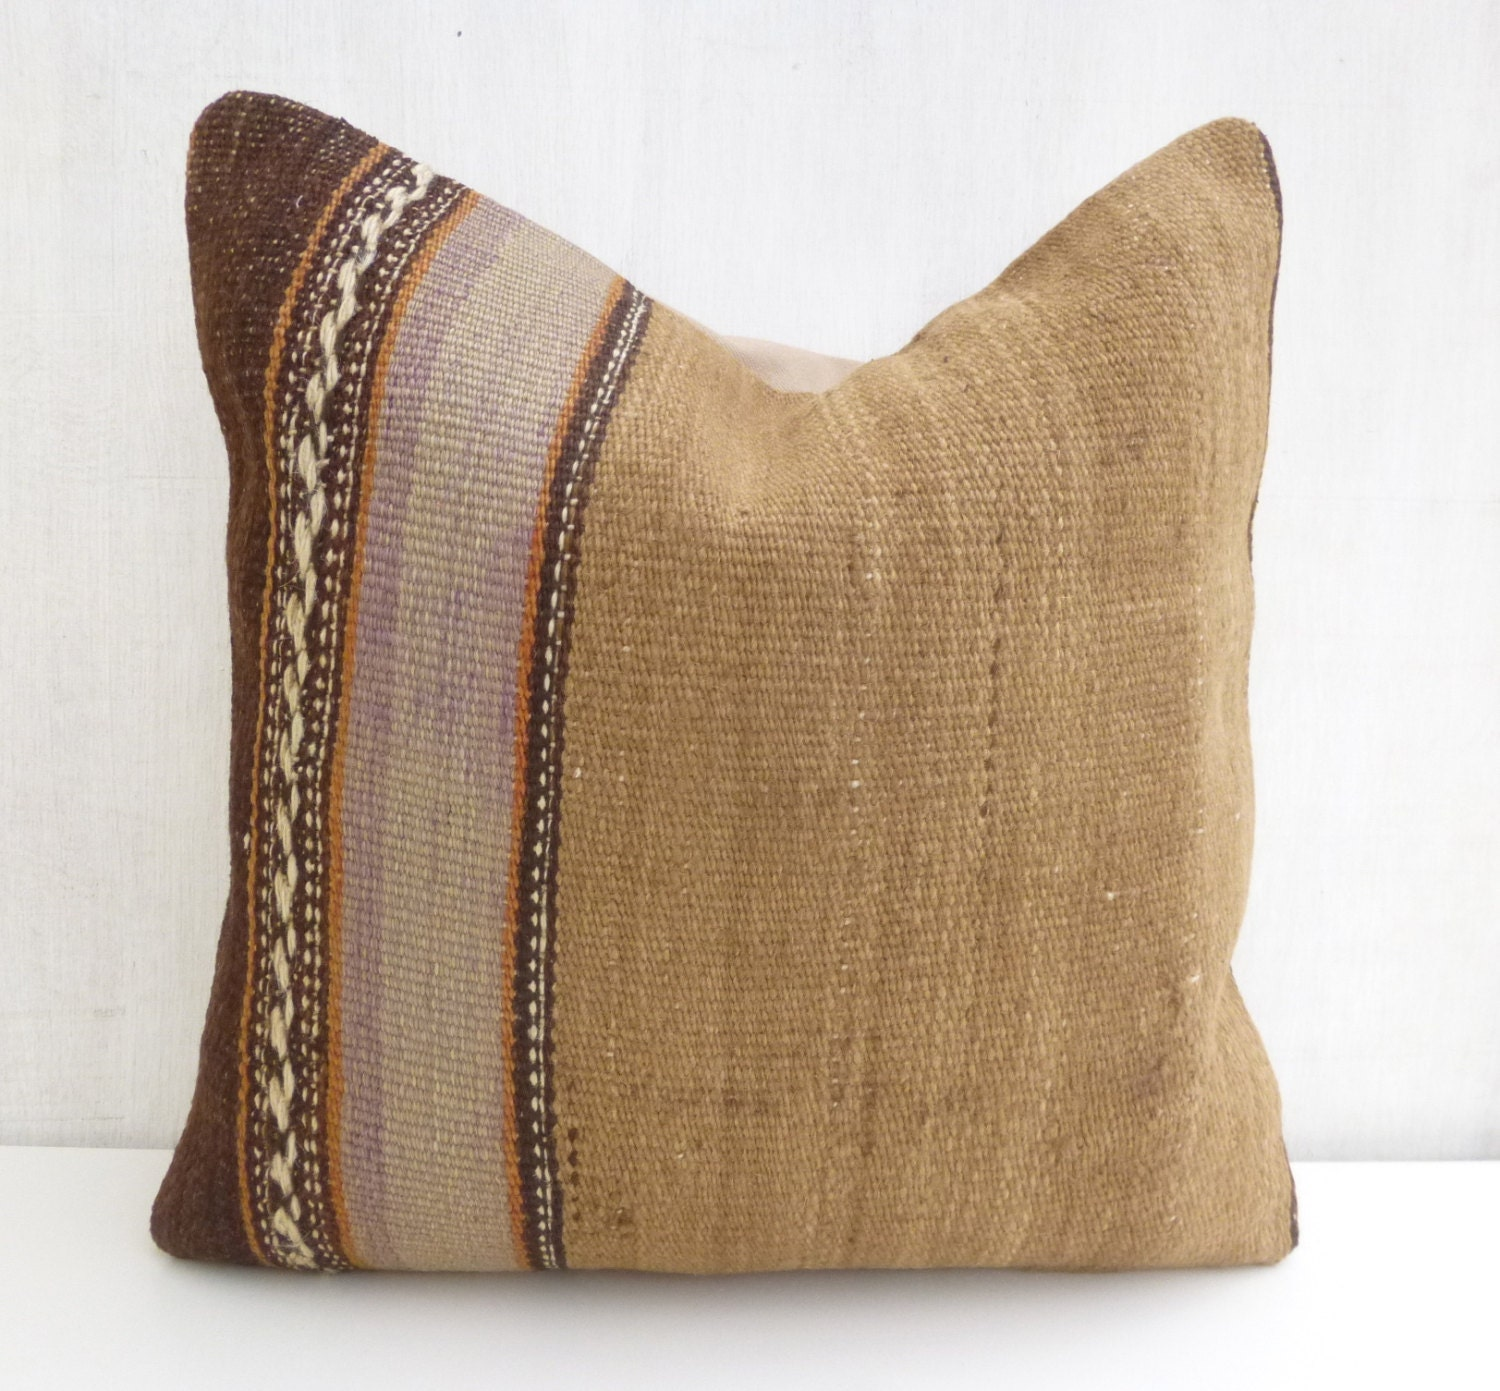 Living Room Throw Pillow Covers : Living room Decor Rustic Kilim pillow Decorative Cushion cover Natural tone Wool Sham 40x40 ...